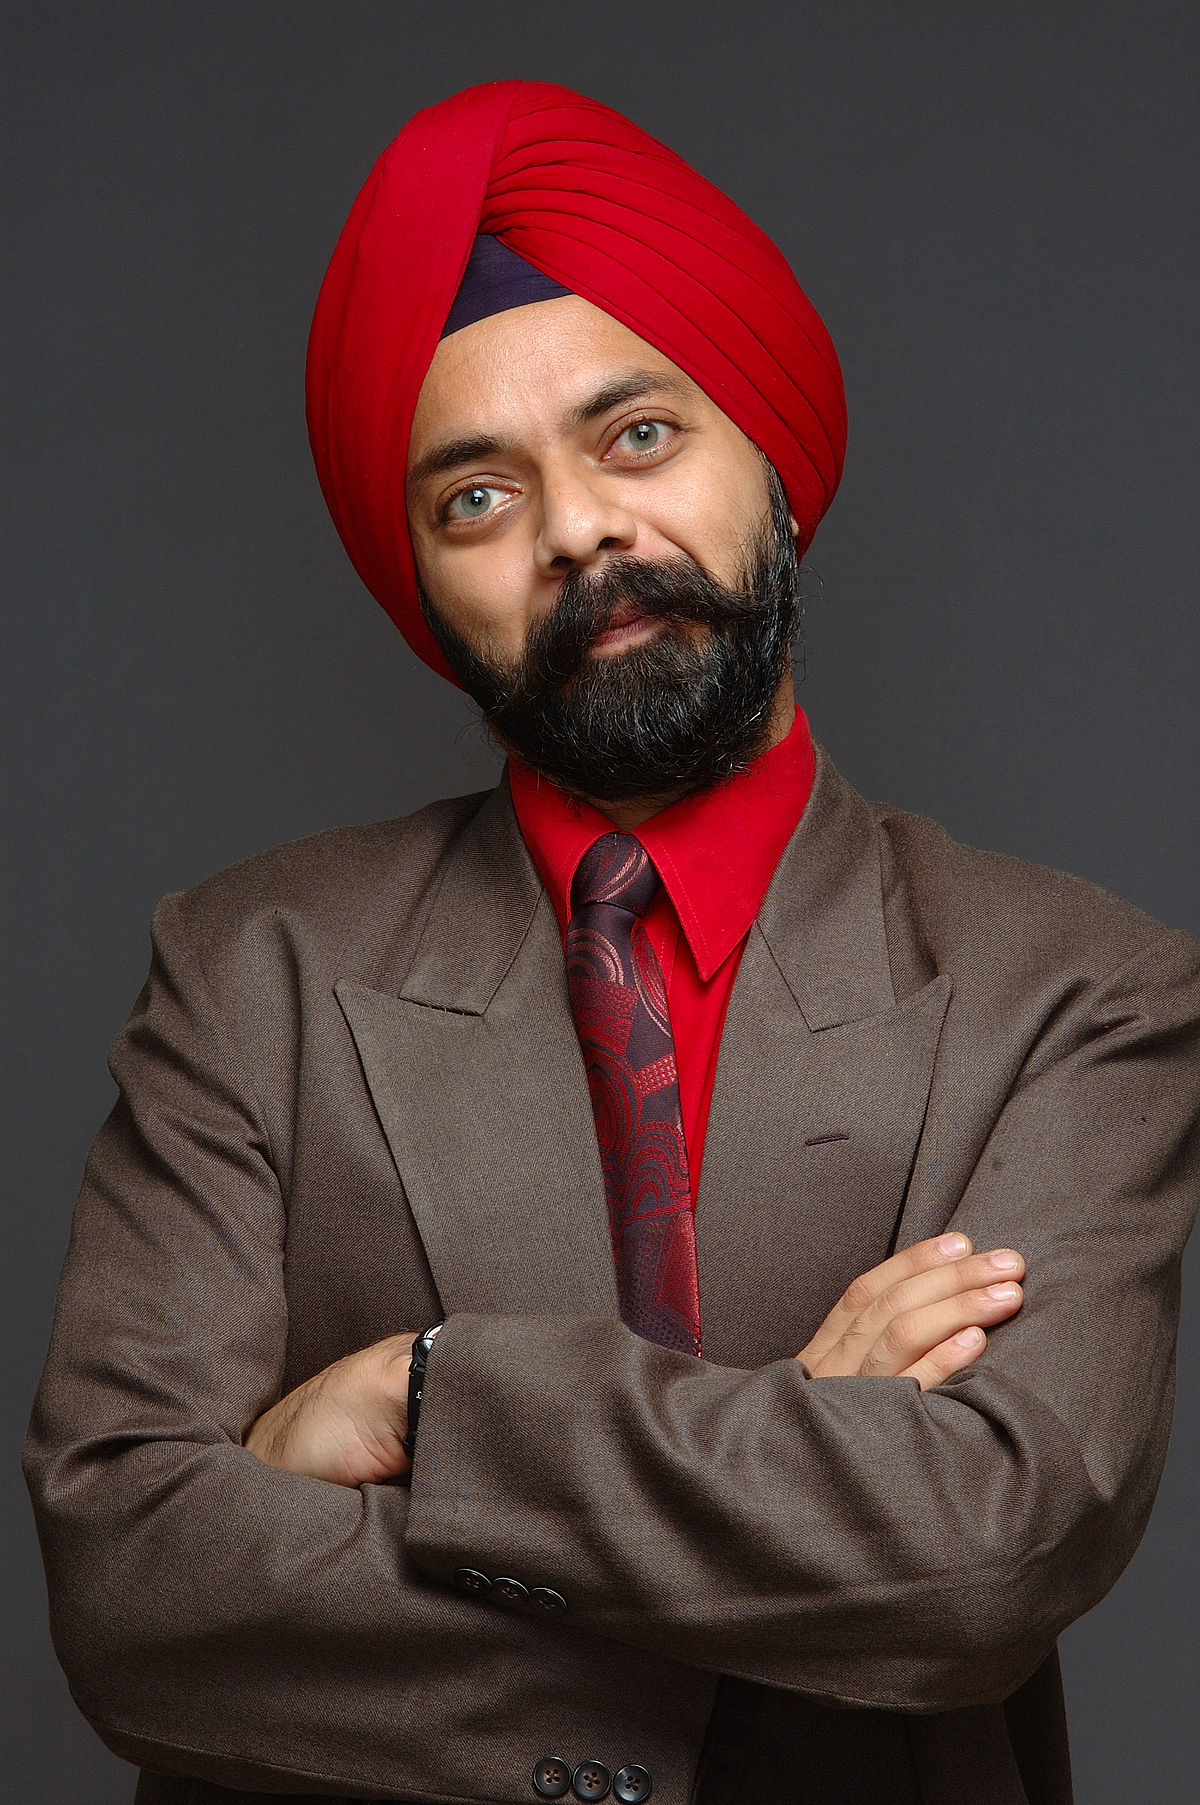 Inderpal Singh - Wikipedia